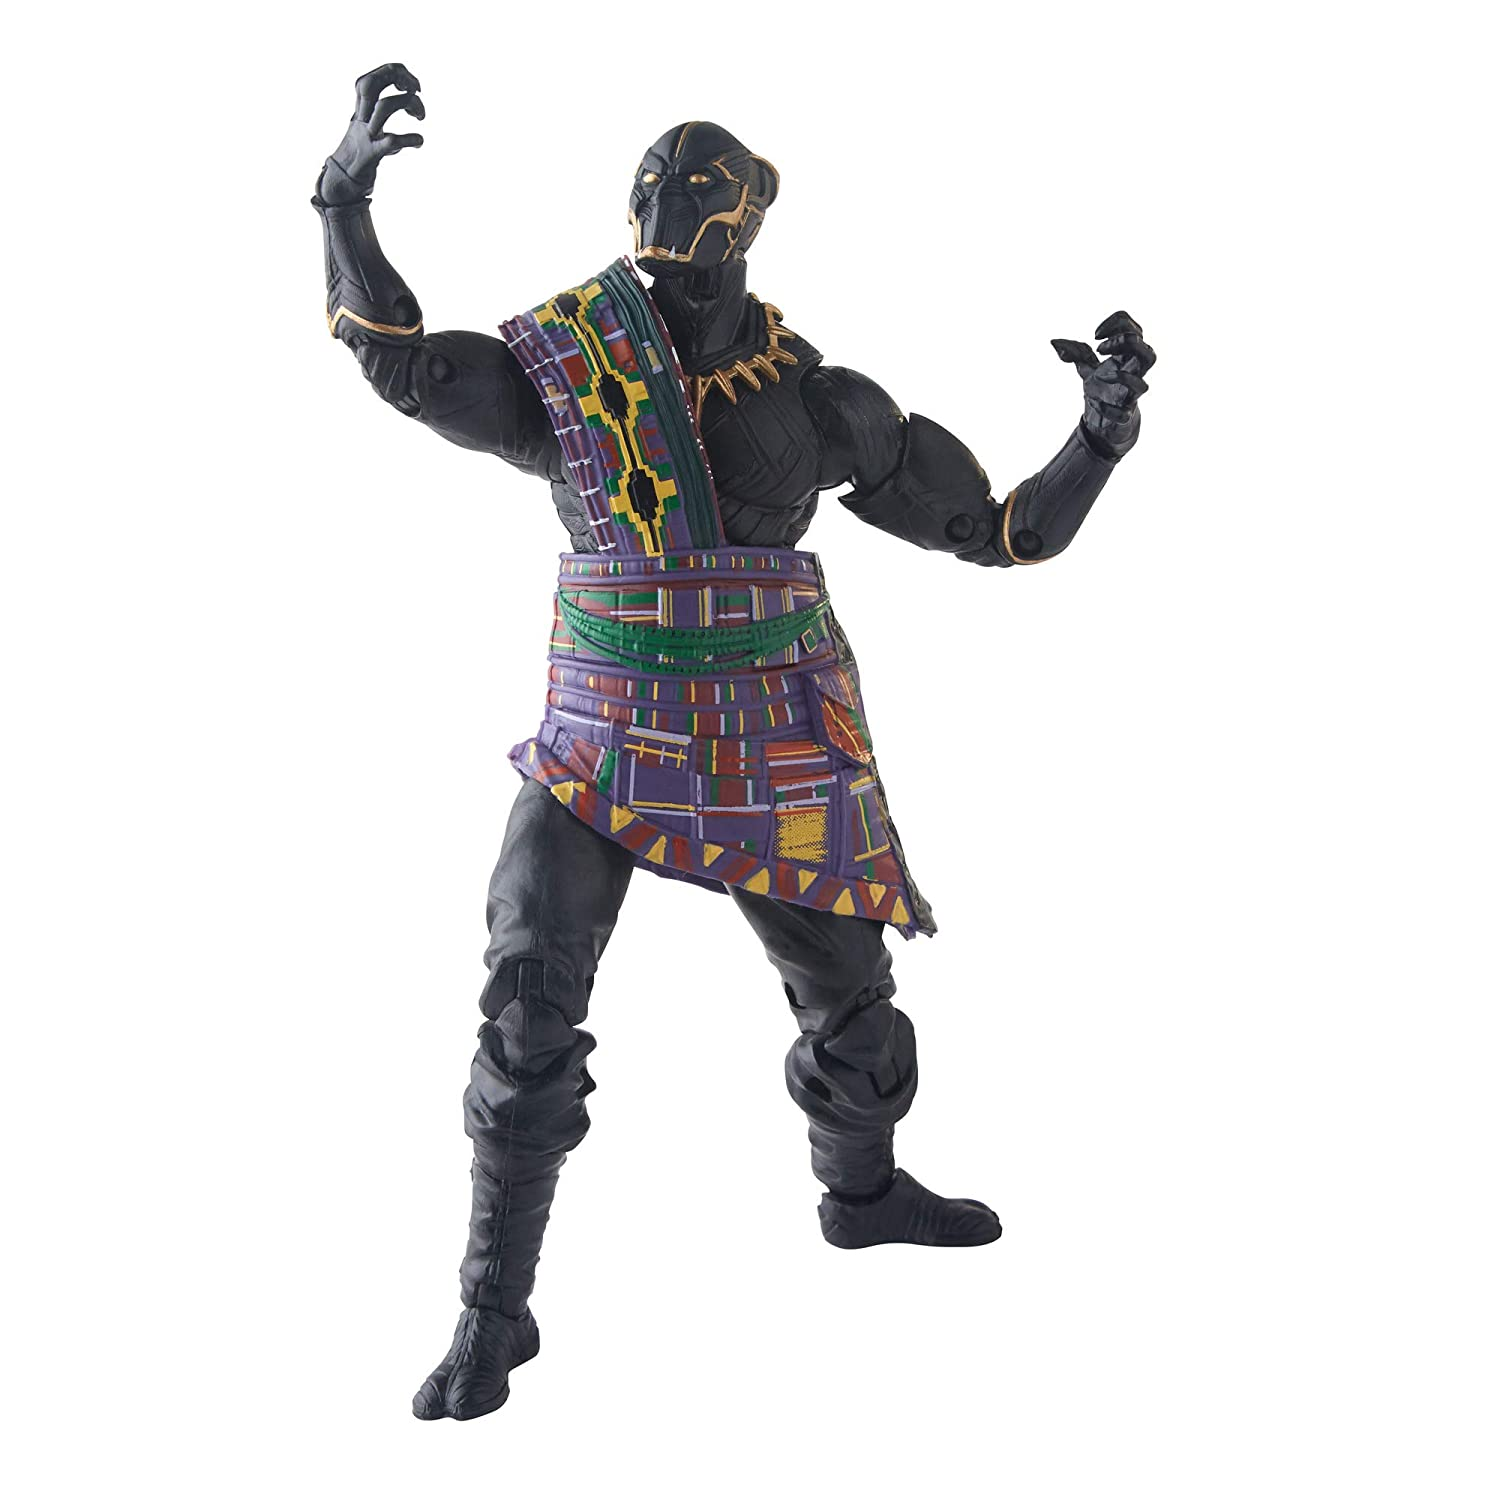 Marvel Legends Series Black Panther 6-inch T/'Chaka Figure Hasbro E5788AS00